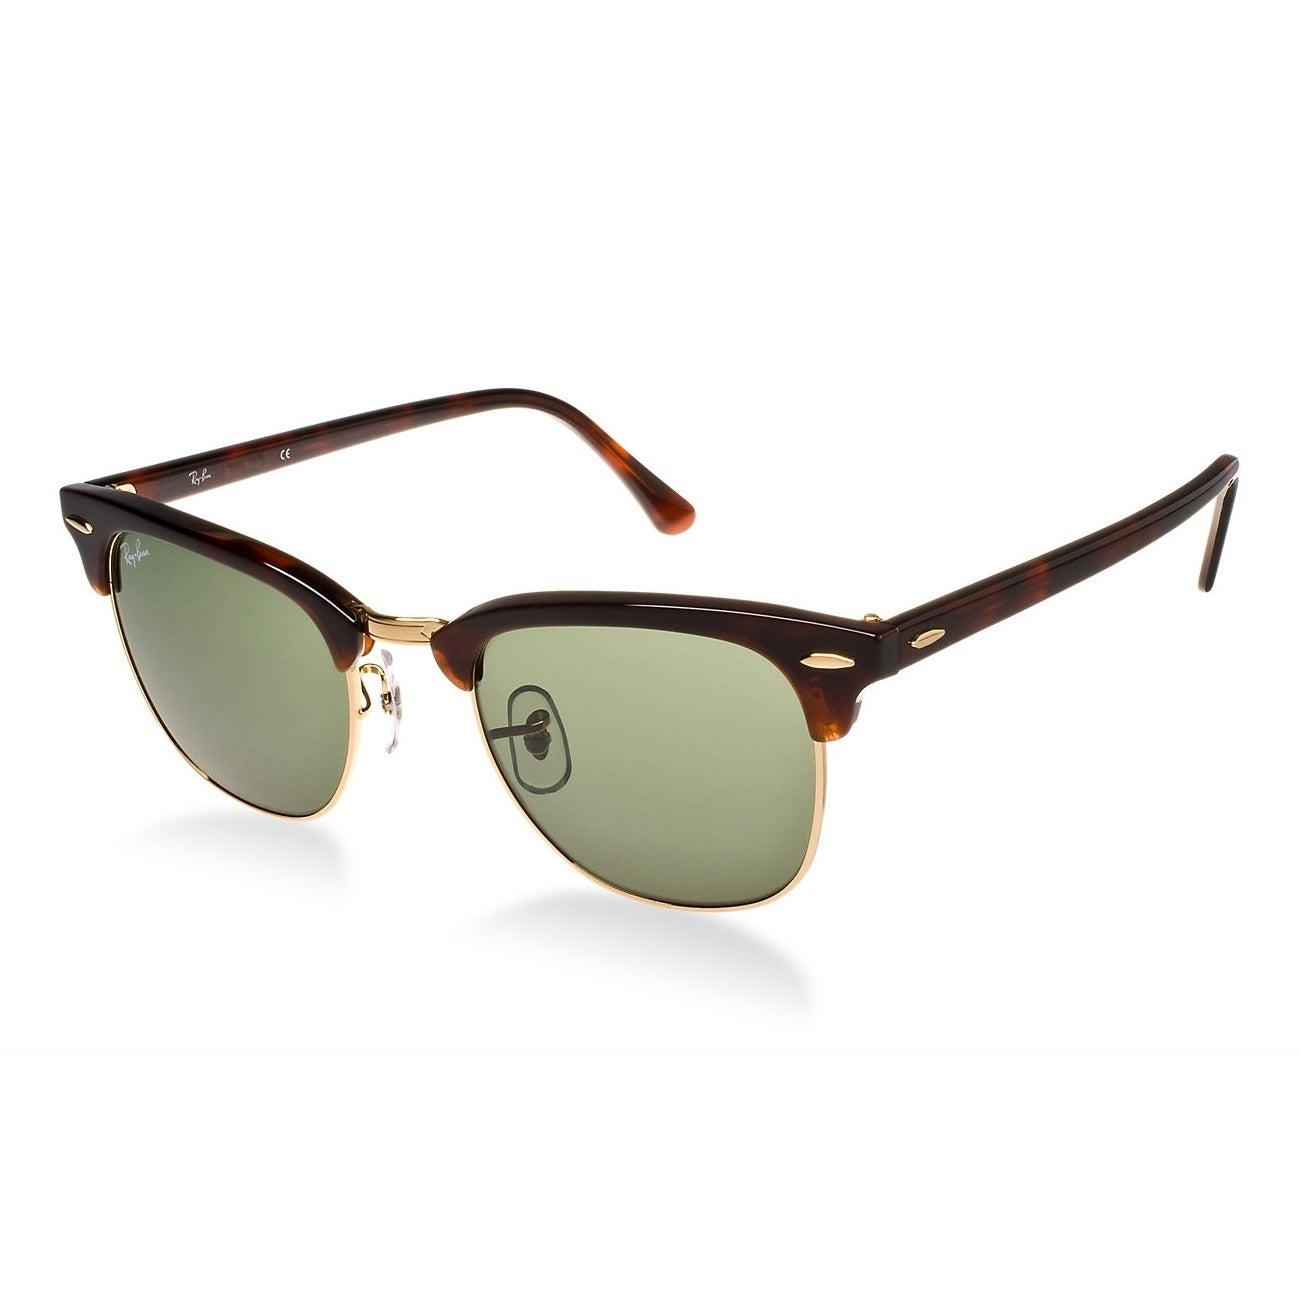 f90d72e77 Ray-Ban Clubmaster RB 3016 Unisex Tortoise Frame Green Classic Lens  Sunglasses